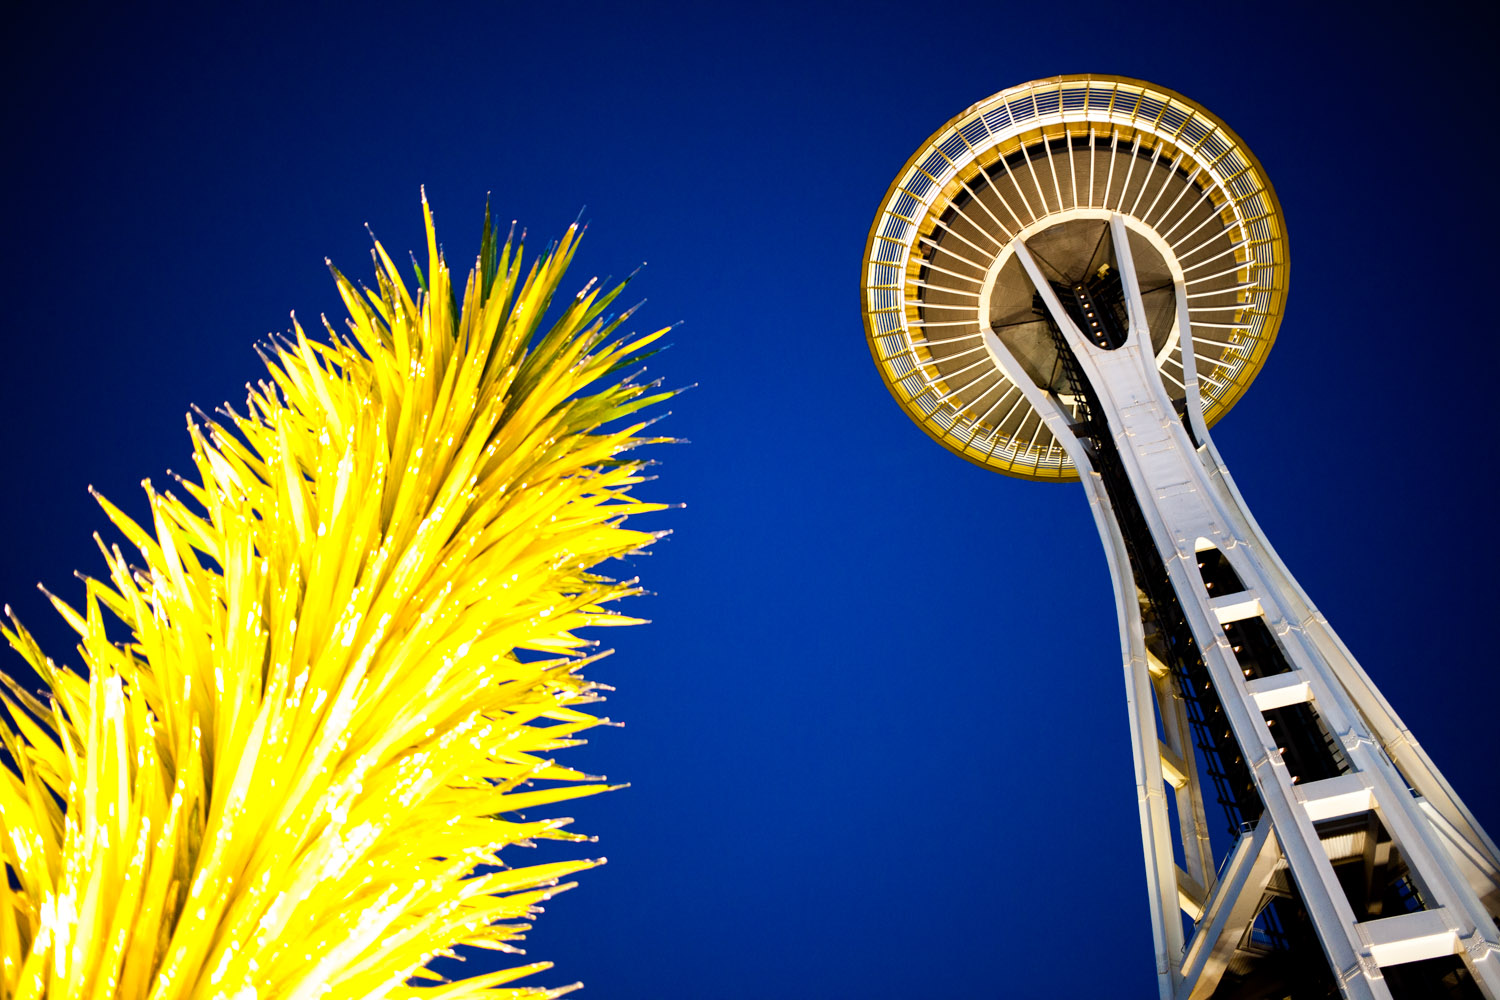 Chihuly Garden & Glass and the Space Needle.